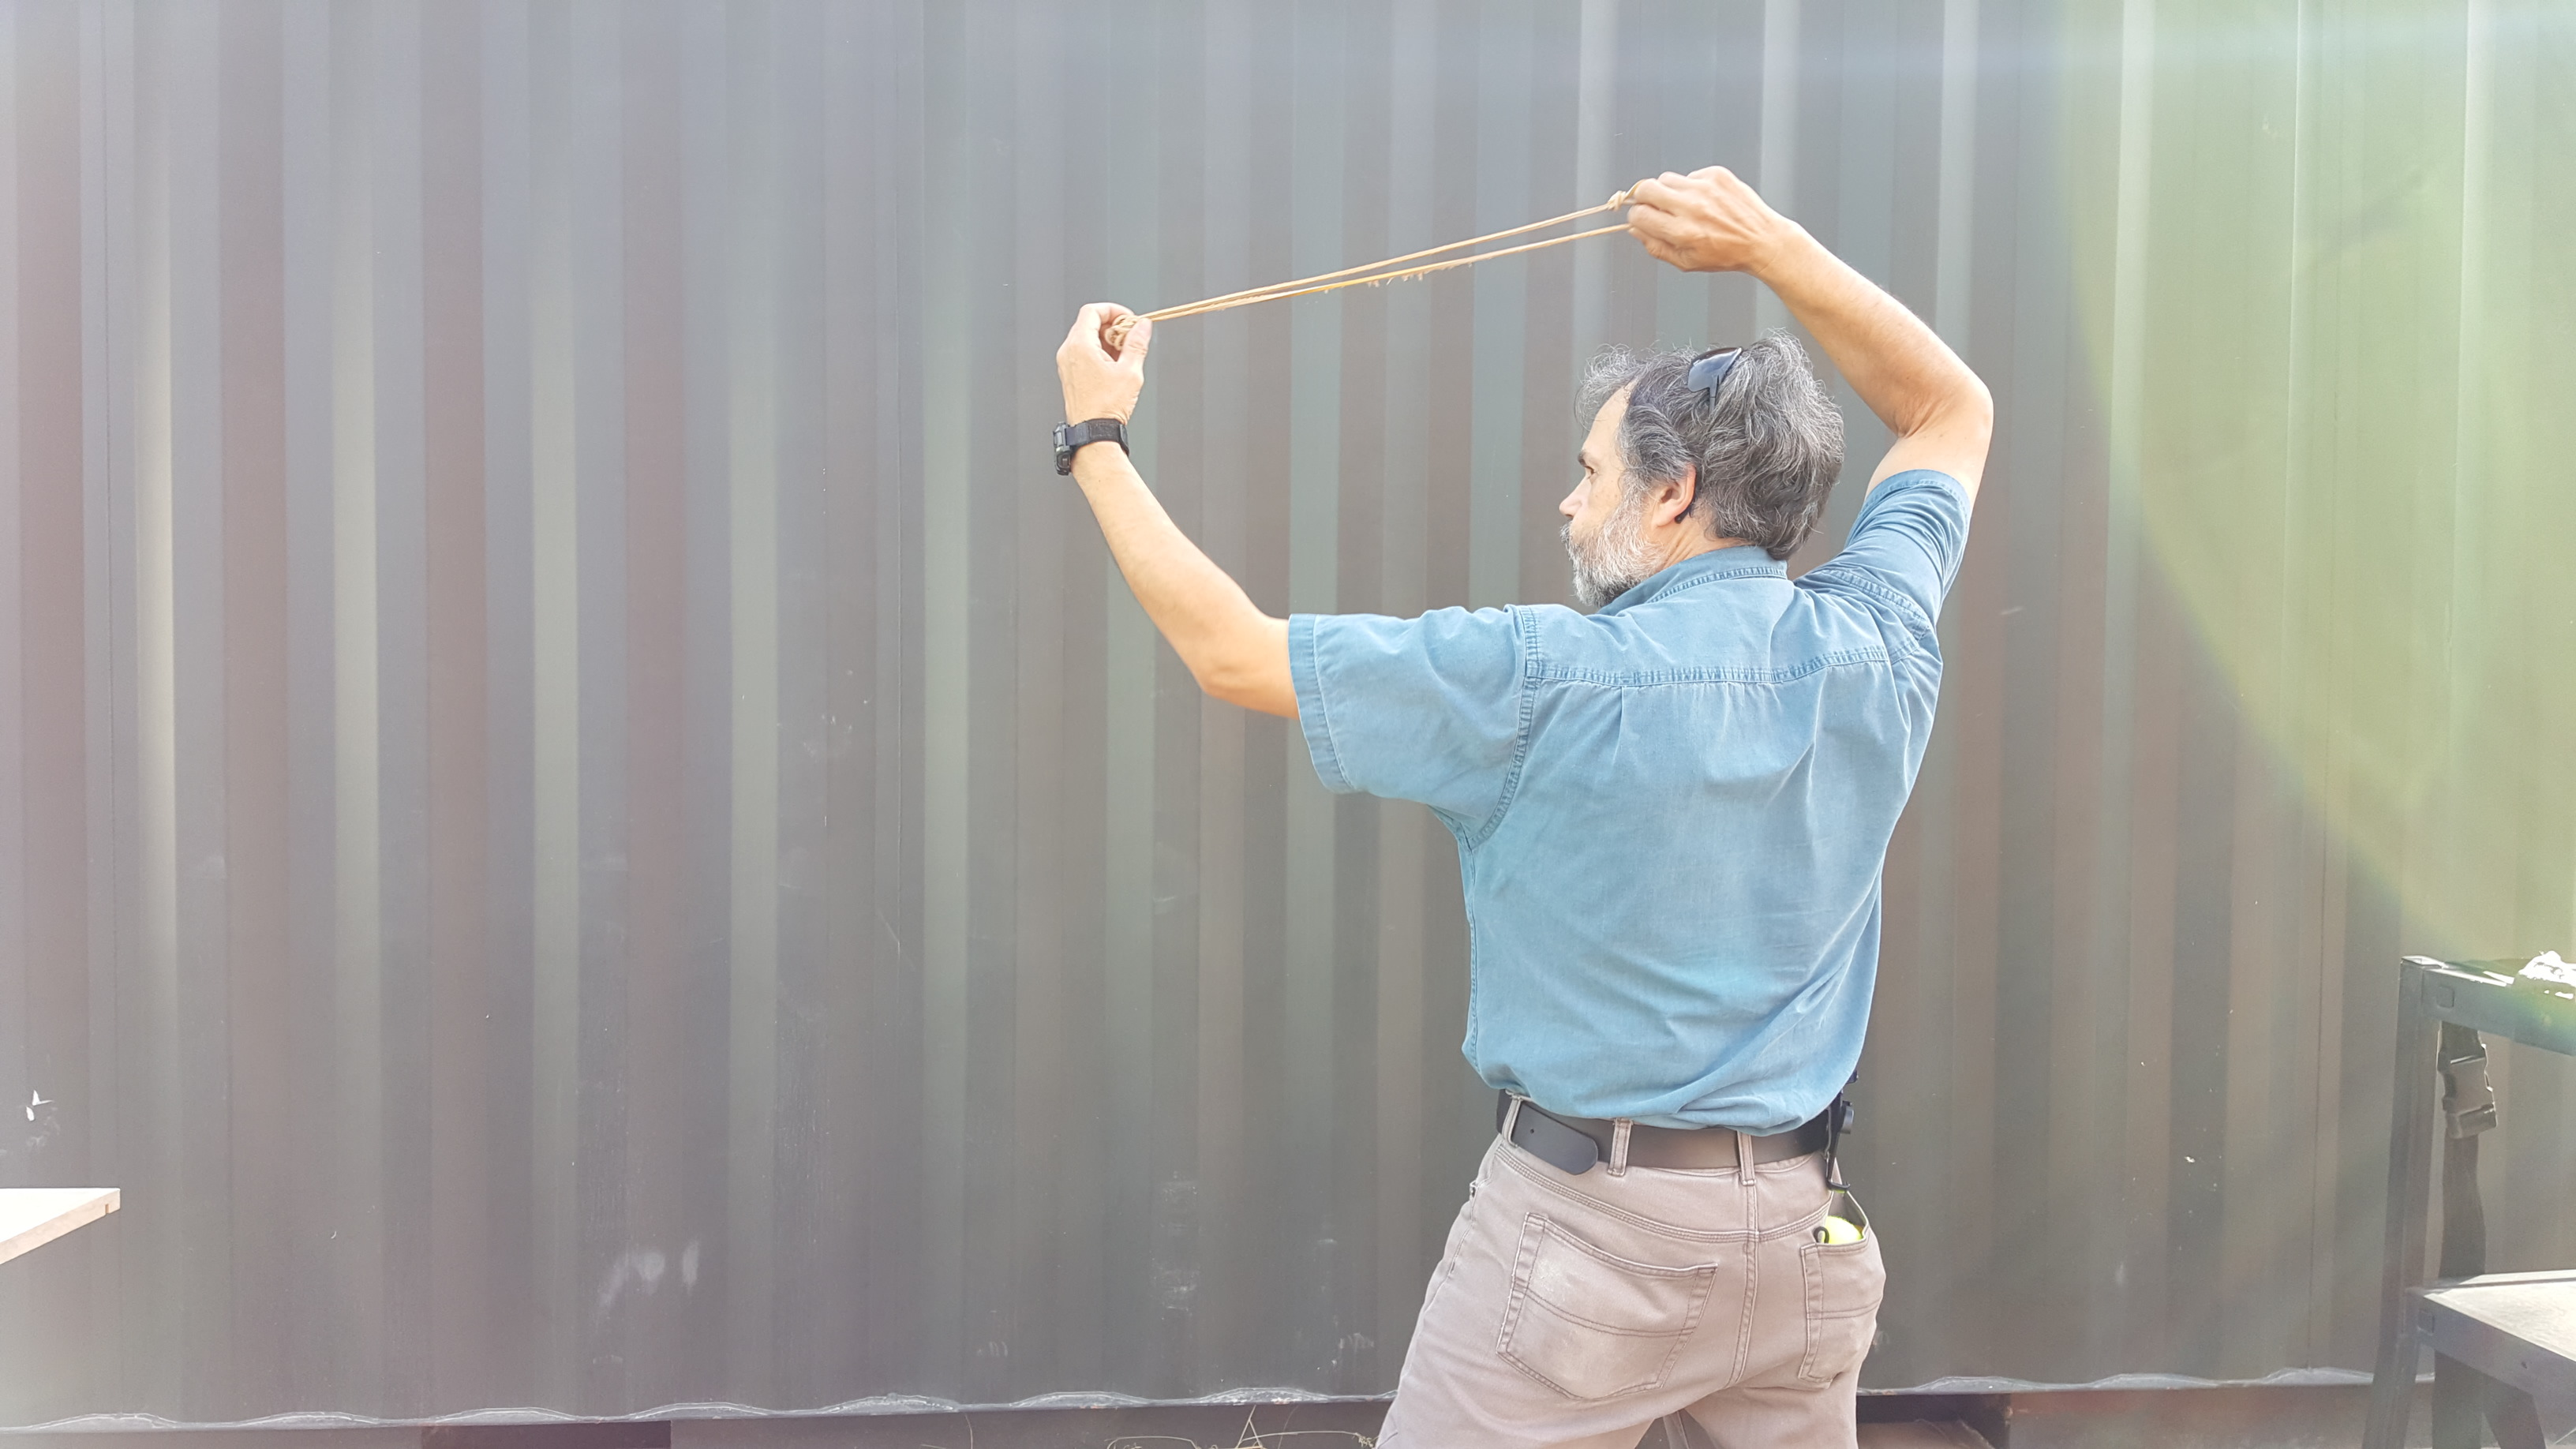 Picture of Practice Throwing a Sling